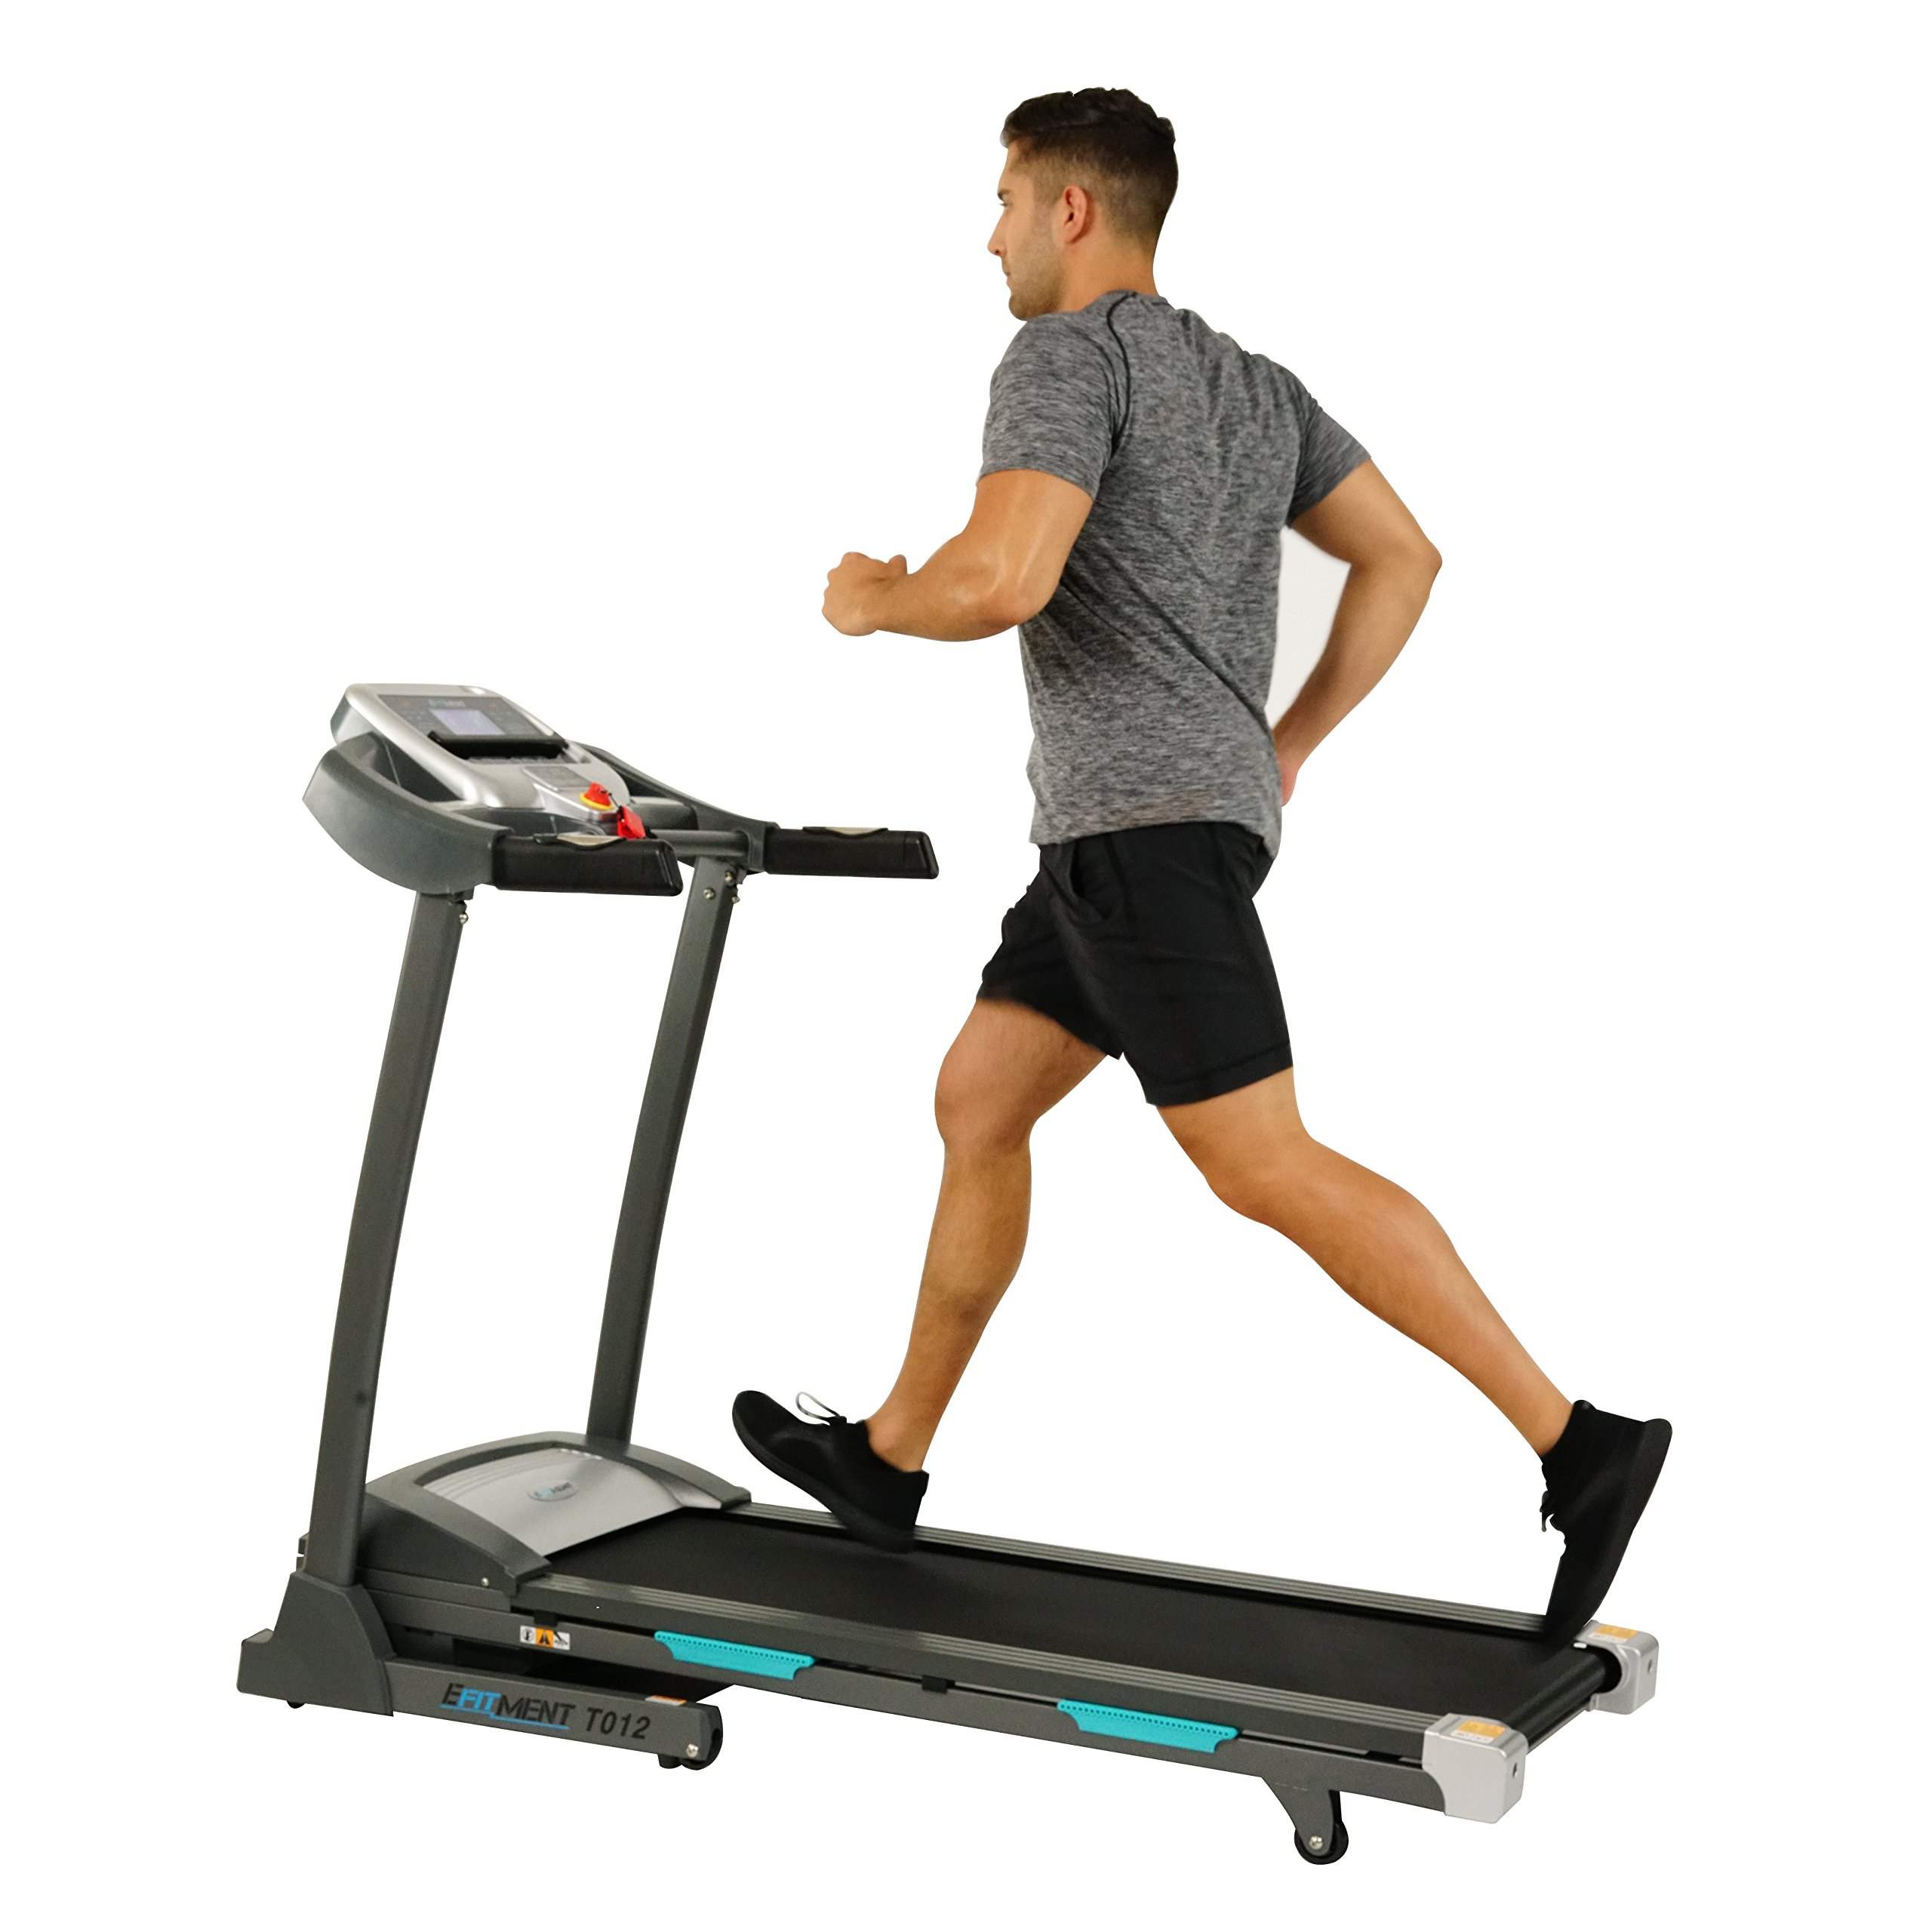 Auto Incline Bluetooth Motorized Treadmill w/ Speakers & Folding for Running & Walking by EFITMENT - T012 by EFITMENT